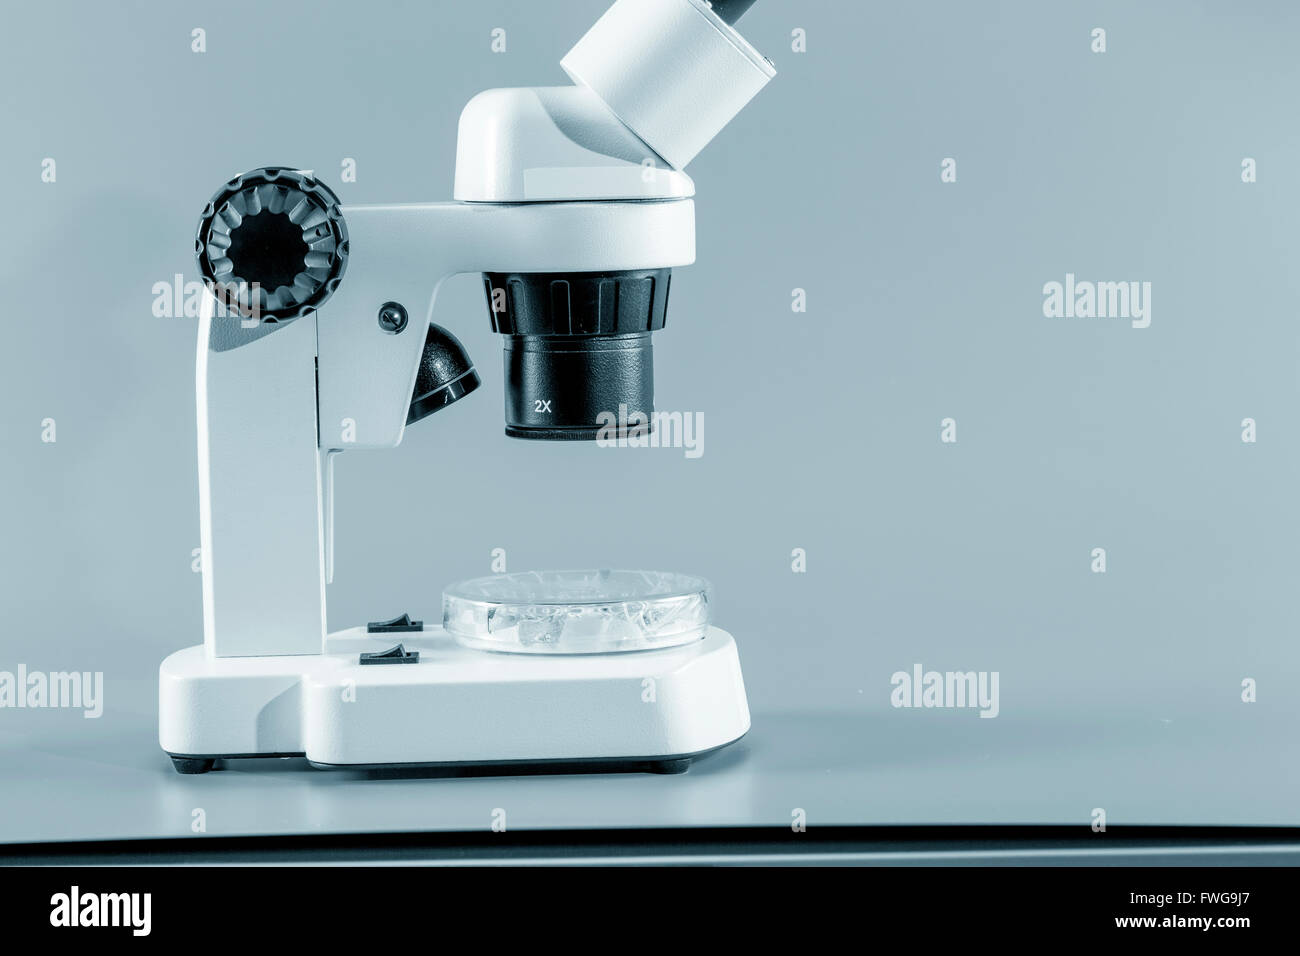 Monocular microscope against a grey background. - Stock Image